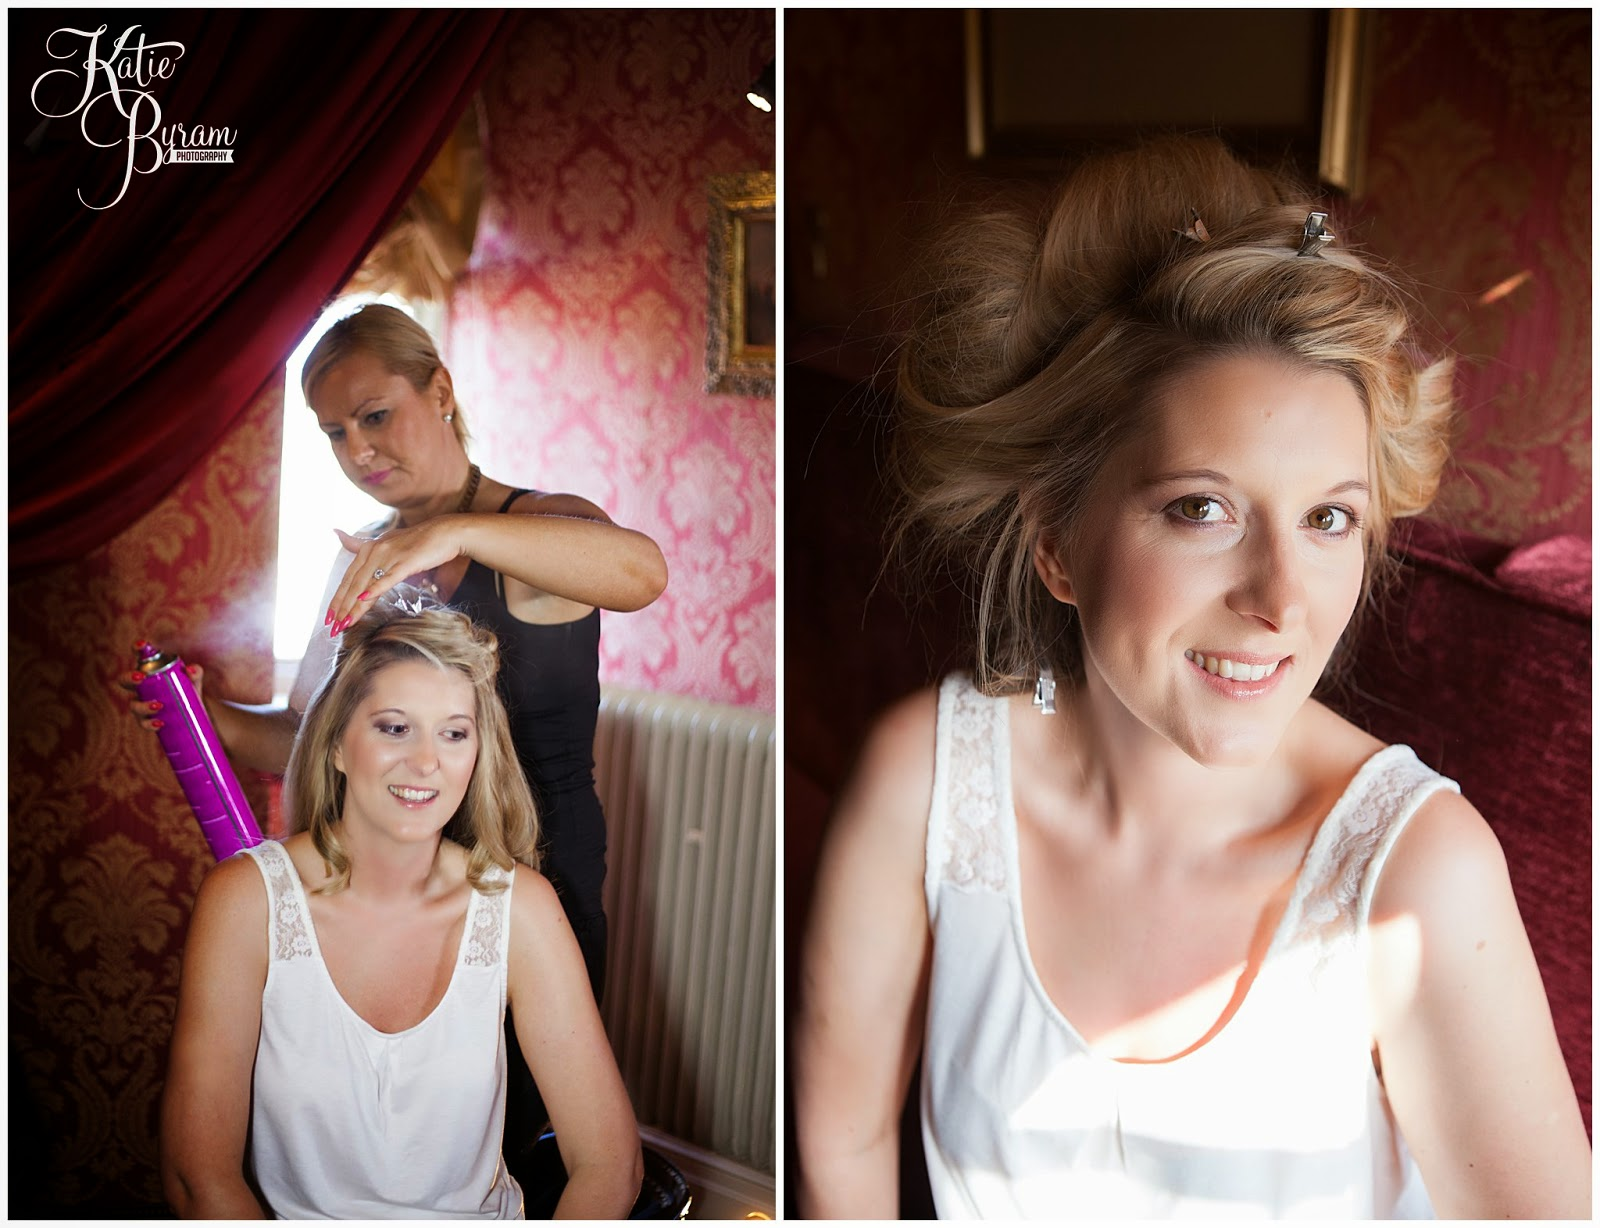 lumley castle wedding, durham wedding, katie byram photography, diane harbridge, carli peirson make up, the big event make up, wedding venues north east, northumberland wedding, quirky wedding photography, travel themed wedding, castle wedding north east, newcastle wedding, chester-le-street